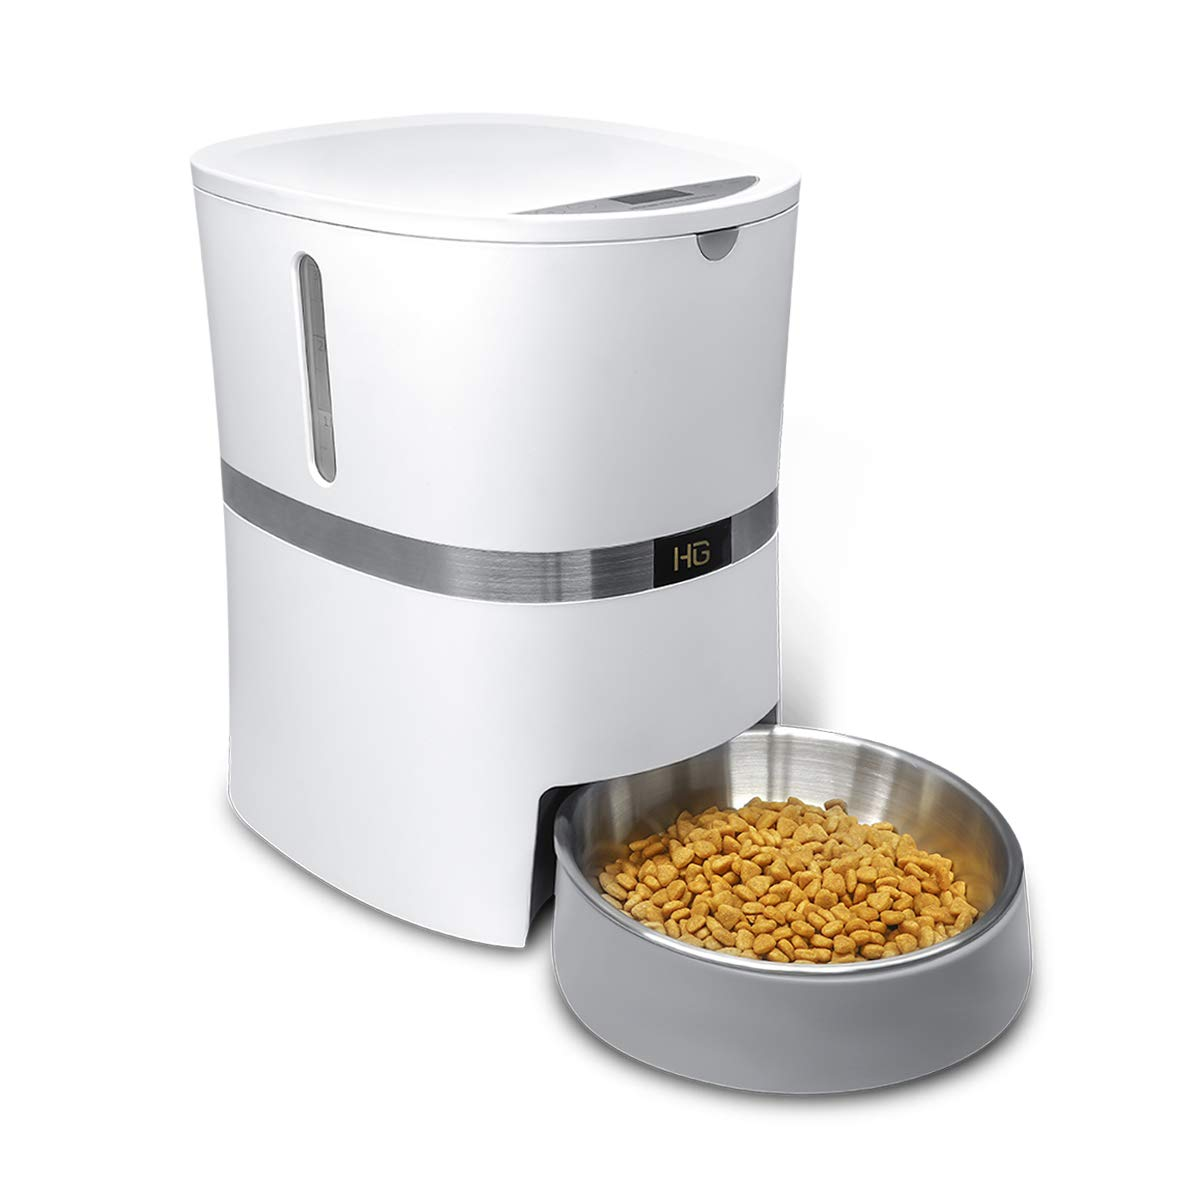 HoneyGuaridan A36 Automatic Pet Feeder, Dog, Cat, Rabbit & Small Animals Food Dispenser with Stainless Steel Pet Food Bowl, Portion Control and Voice Recording - Batteries and Power Adapter Support by HoneyGuaridan